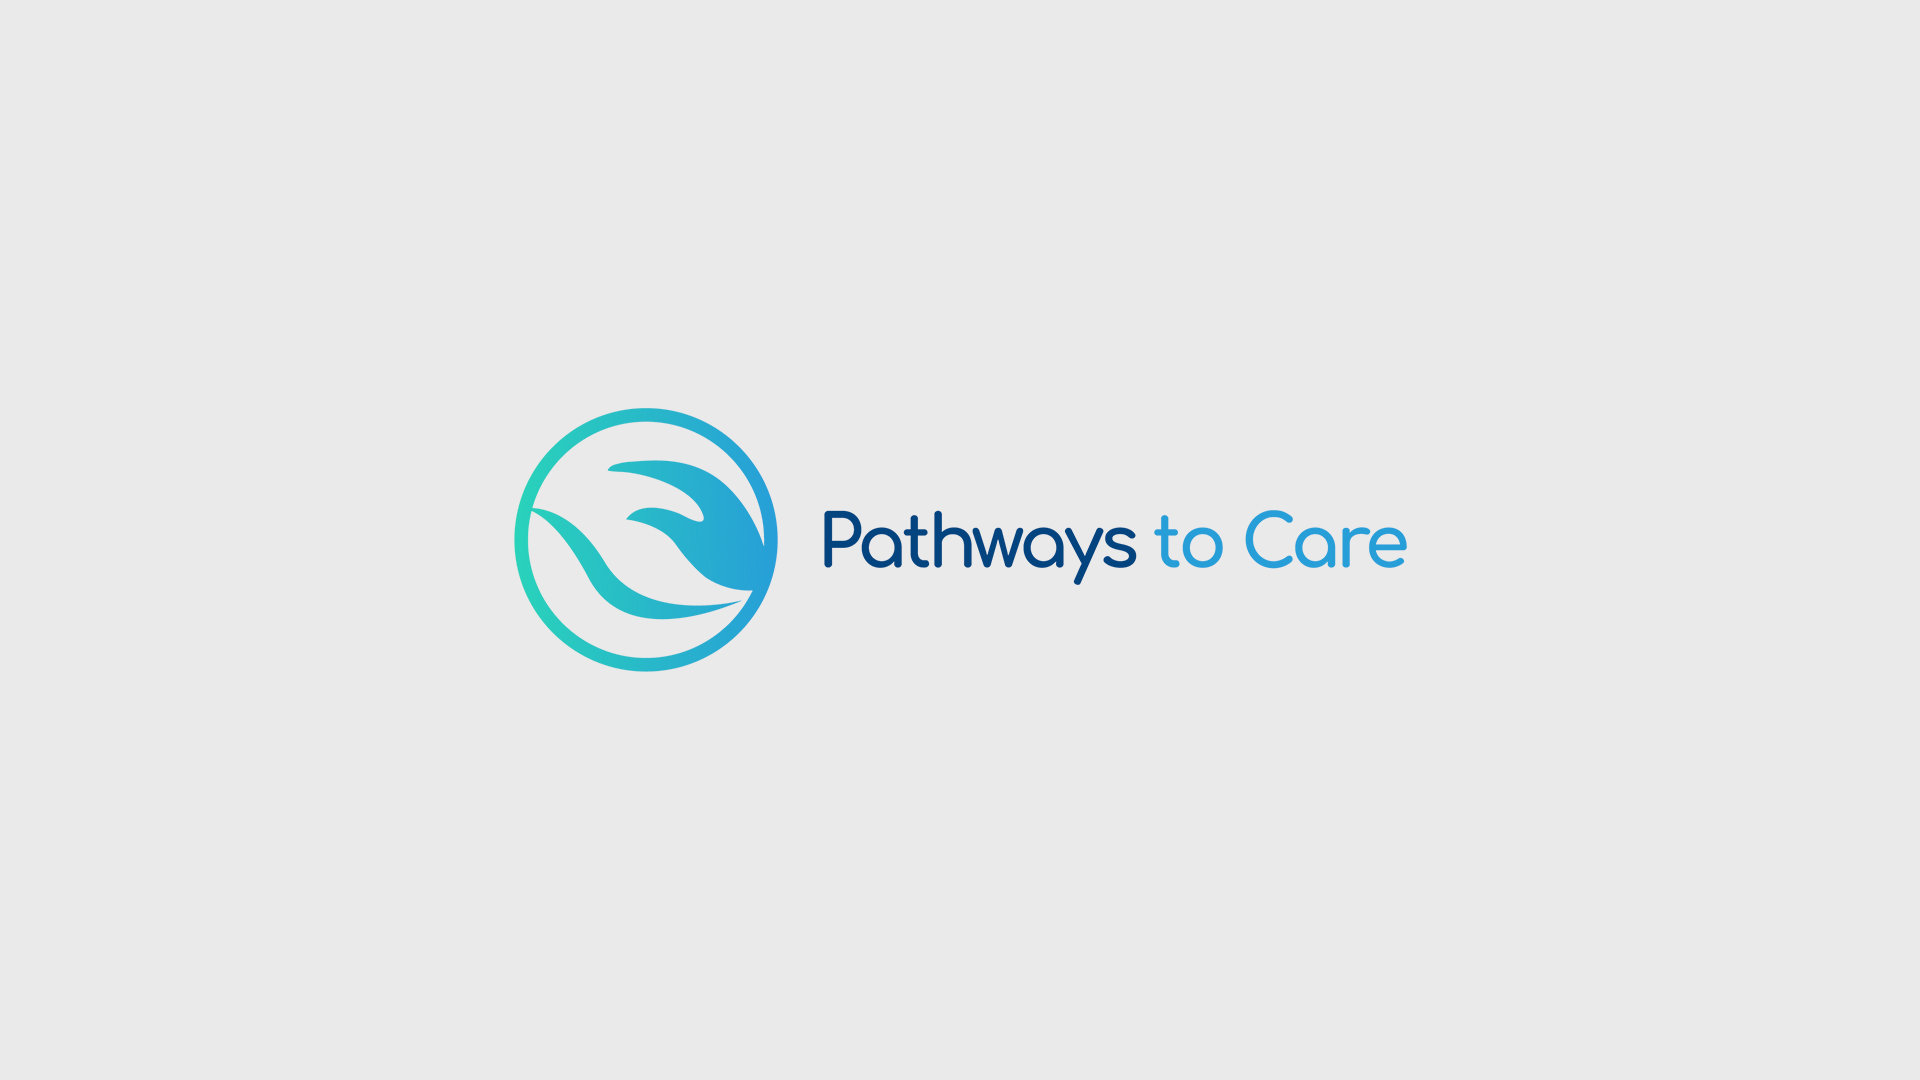 Pathways to Care - Brand Development